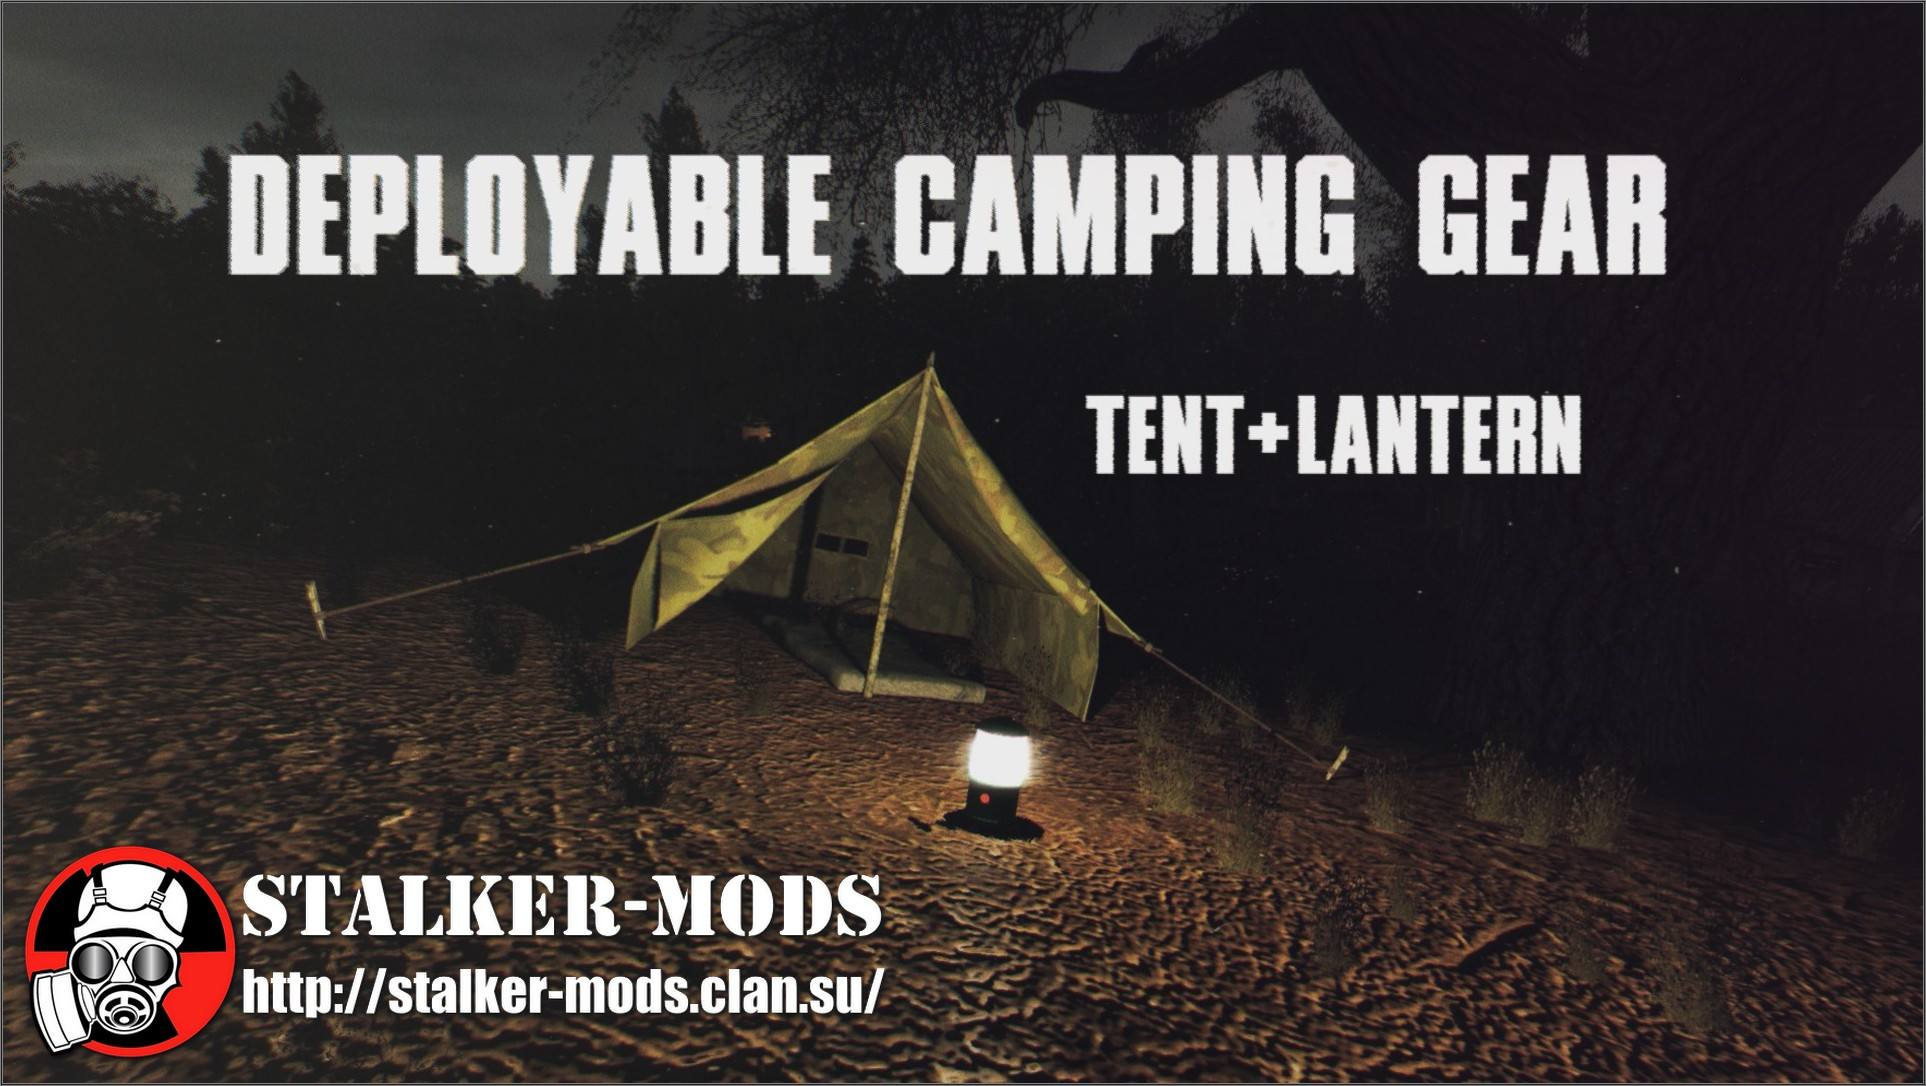 Deployable Camping Gear